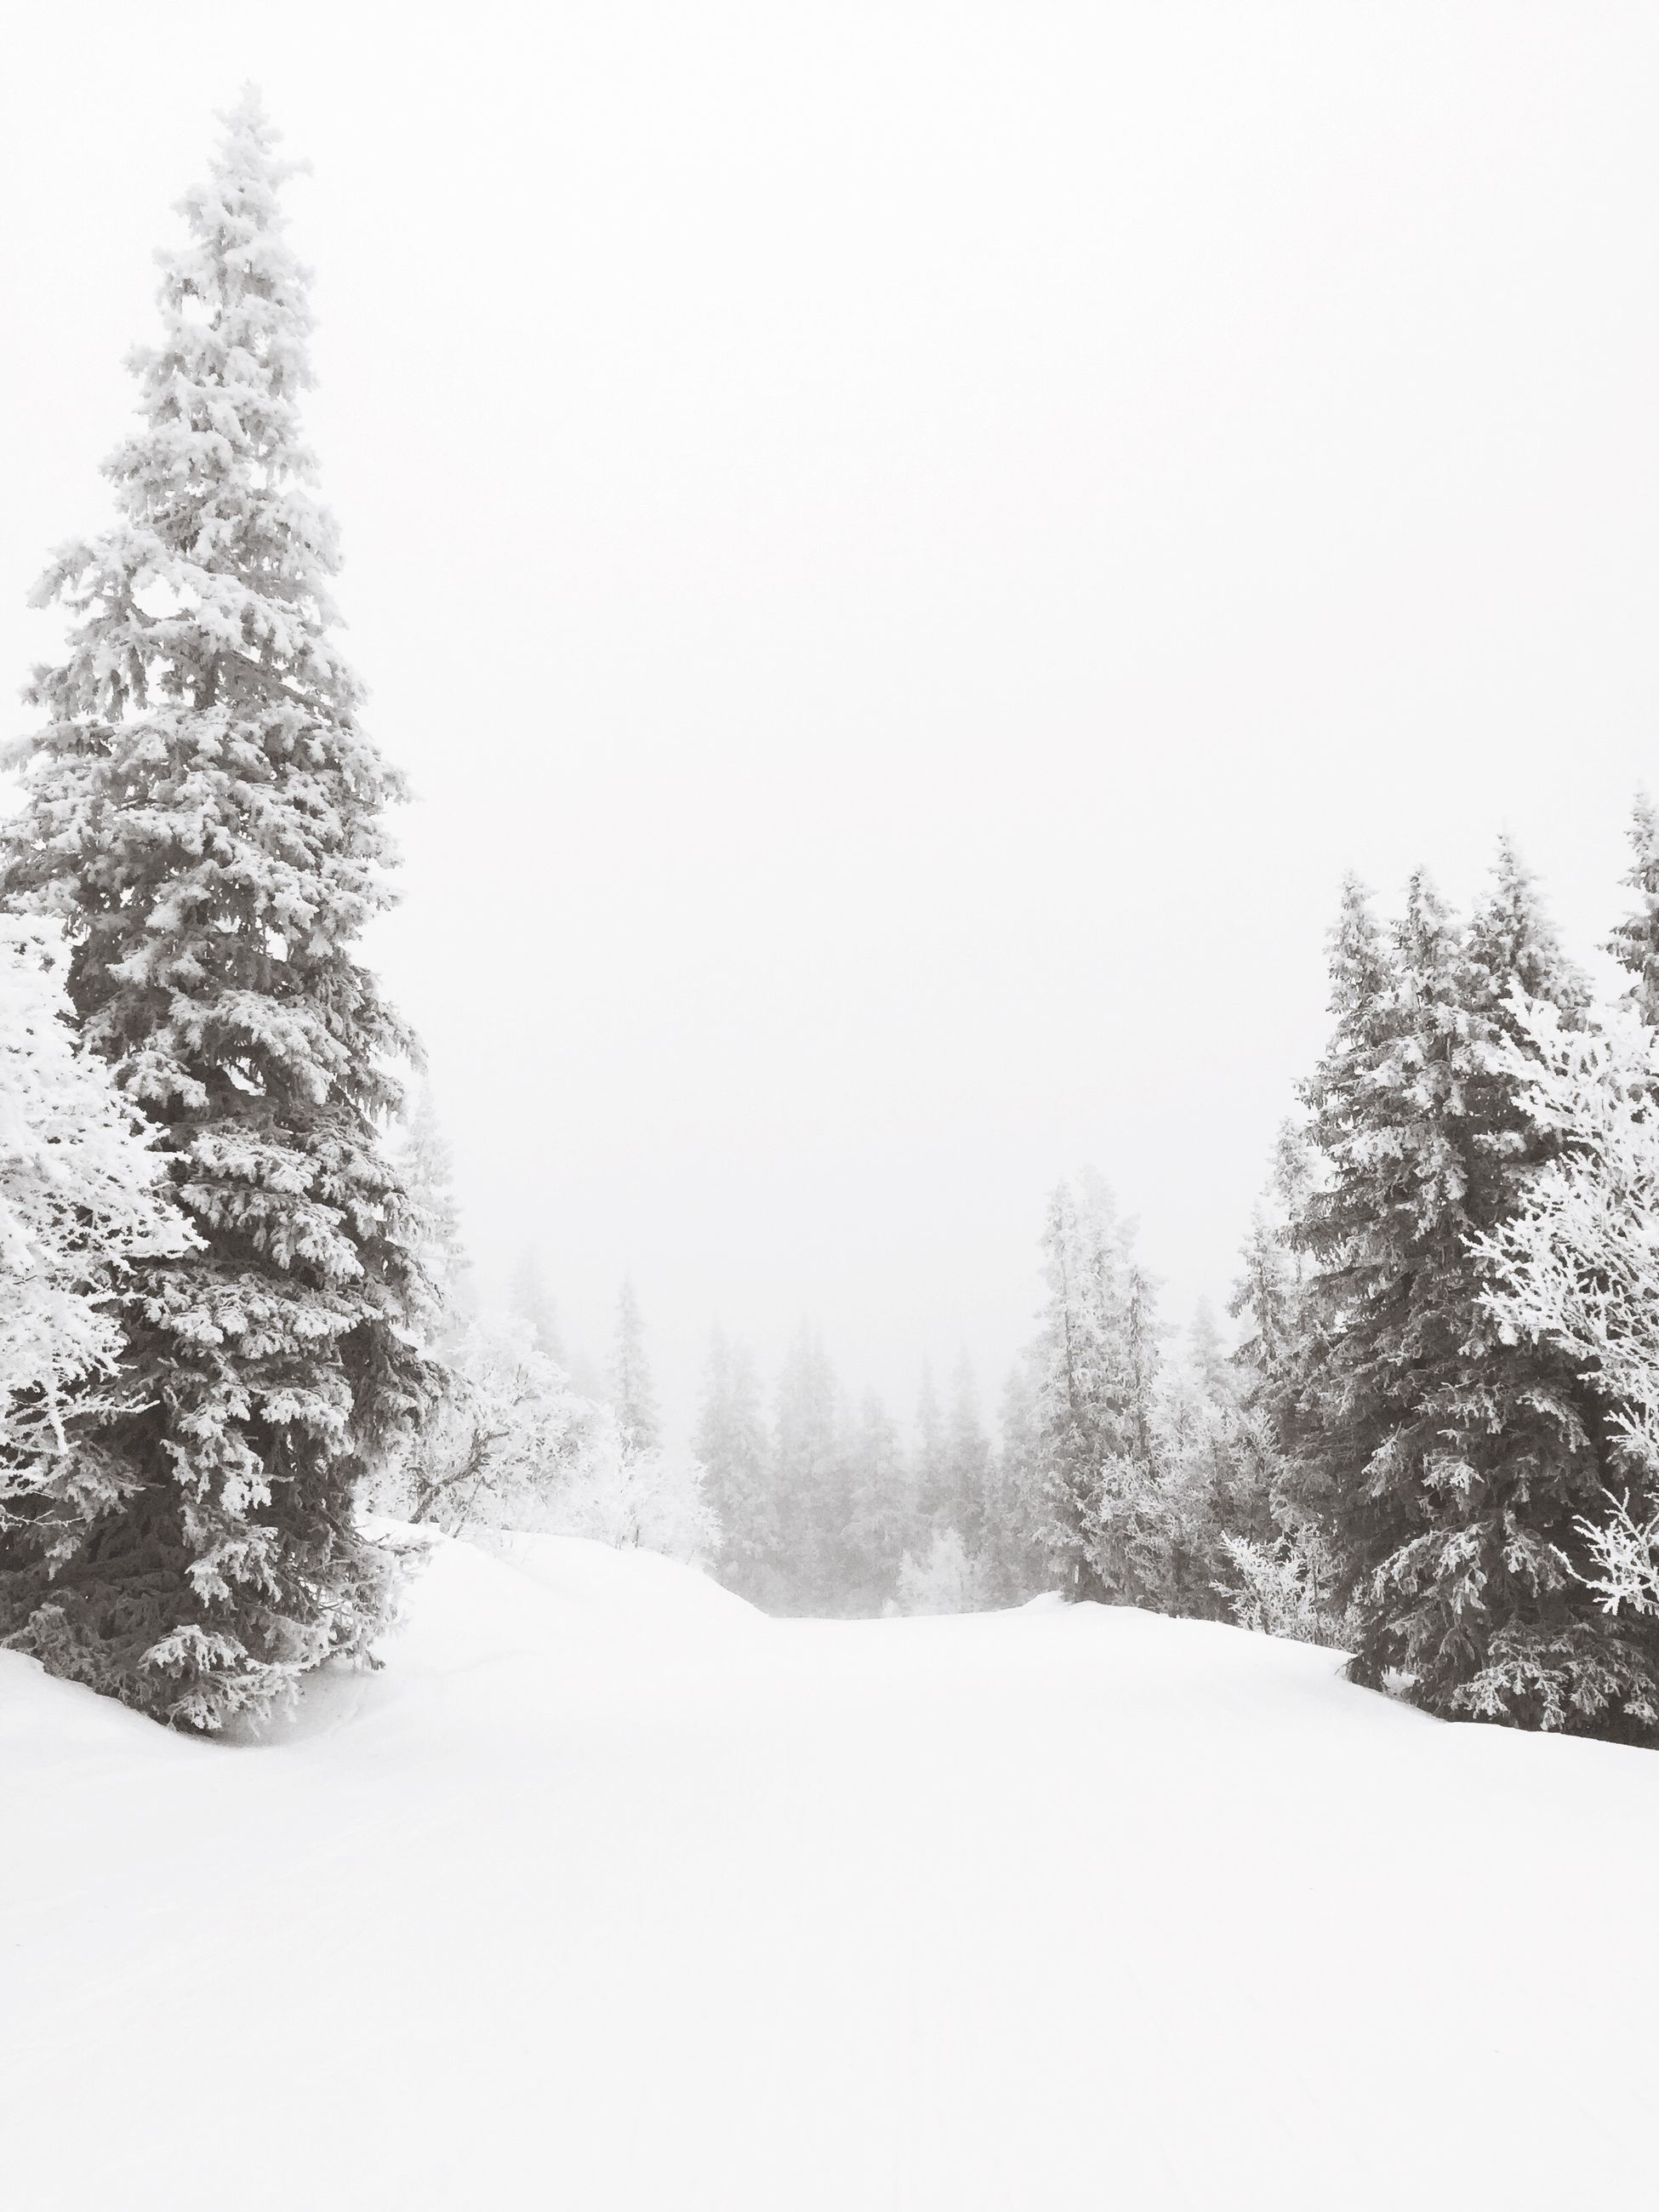 tree, snow, winter, cold temperature, nature, beauty in nature, tranquility, tranquil scene, weather, scenics, day, no people, landscape, covering, outdoors, clear sky, cold, sky